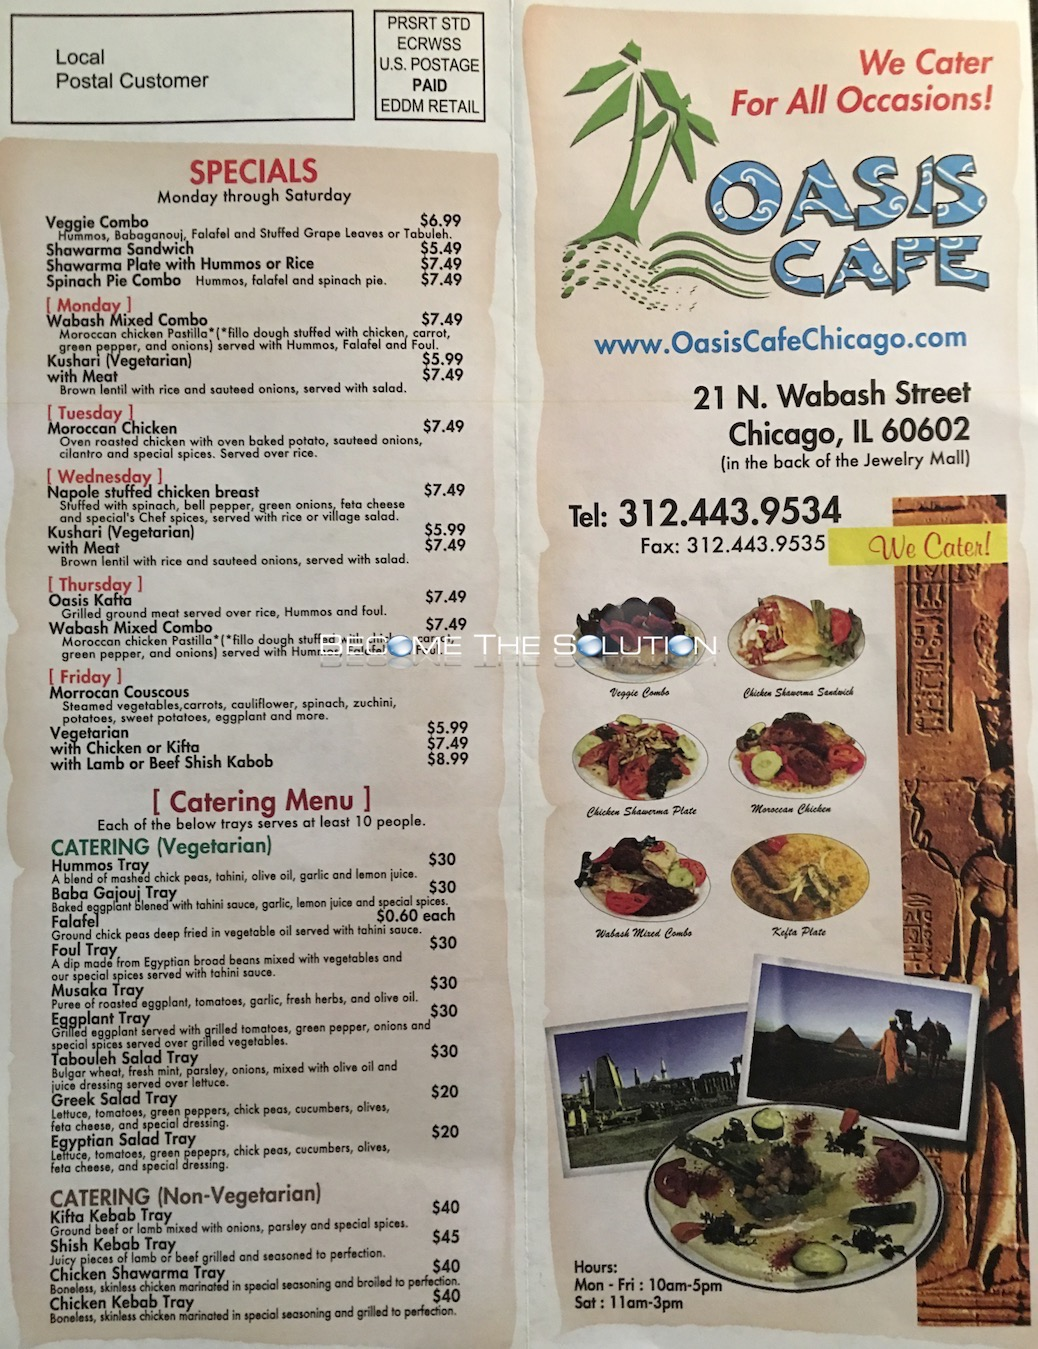 Oasis Cafe Chicago Menu 1